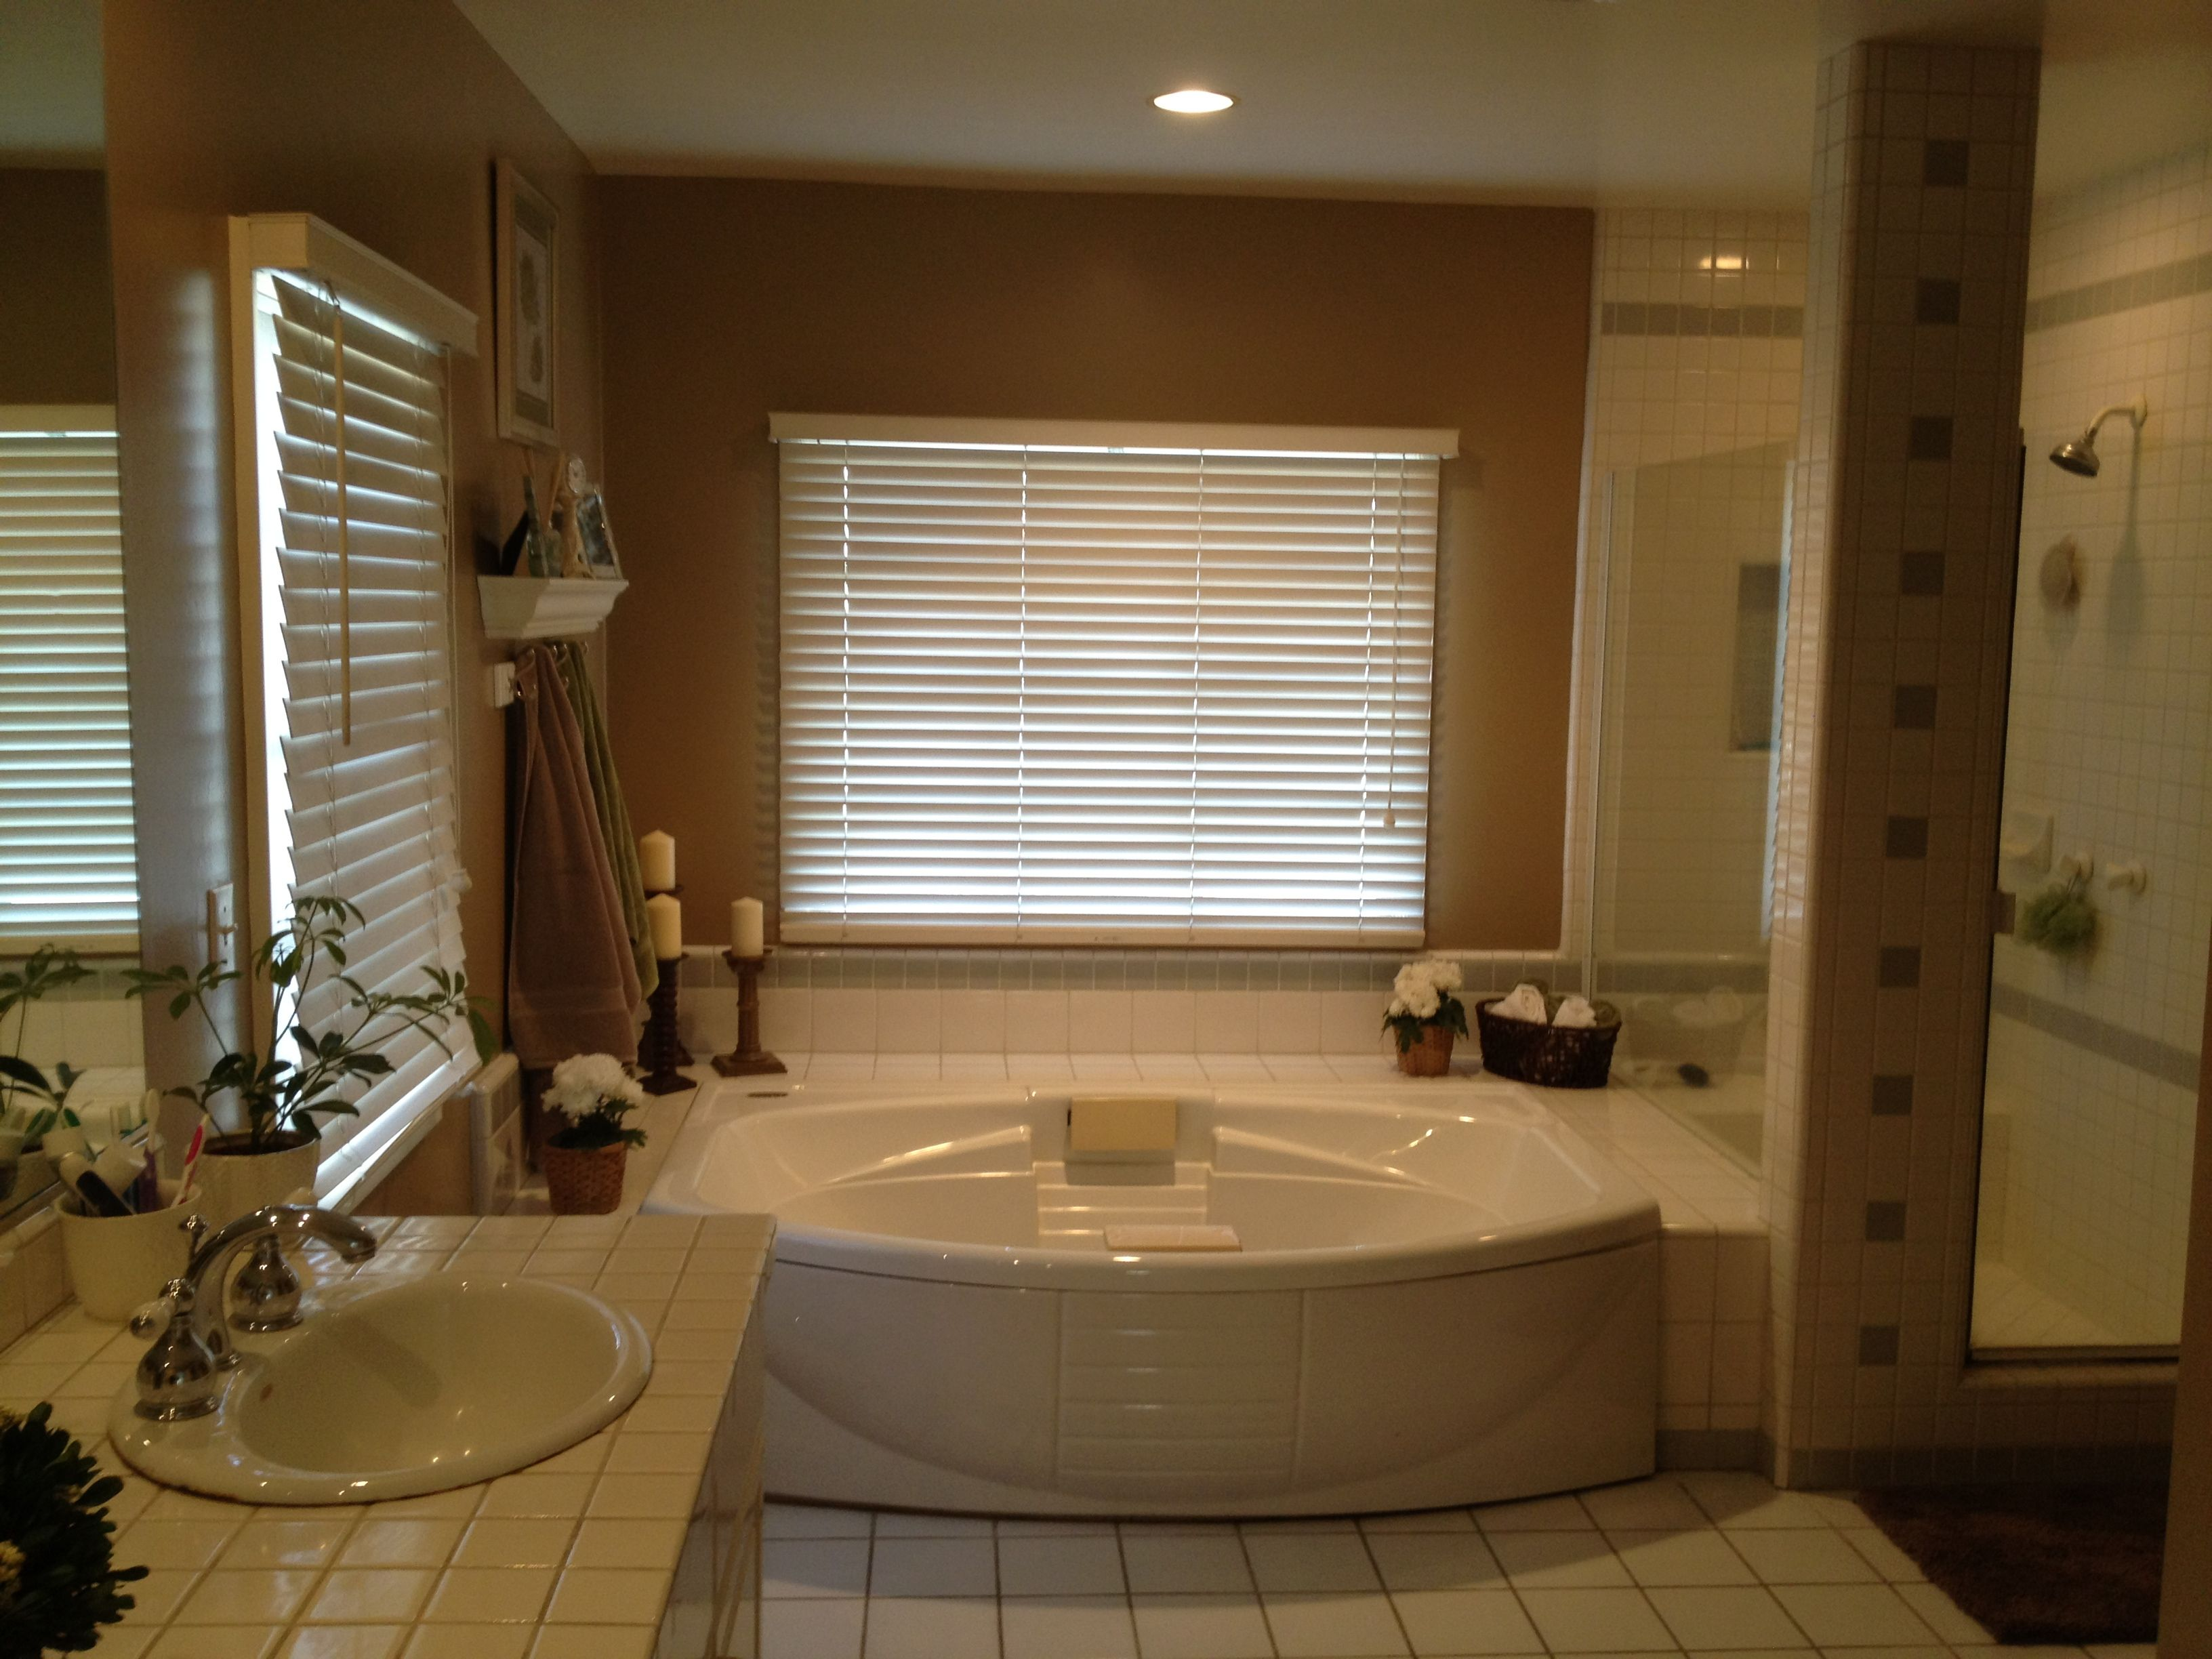 My Latest Project Is To Update My Master Bathroom Like The Photo Awesome Updated Bathrooms Designs Design Ideas